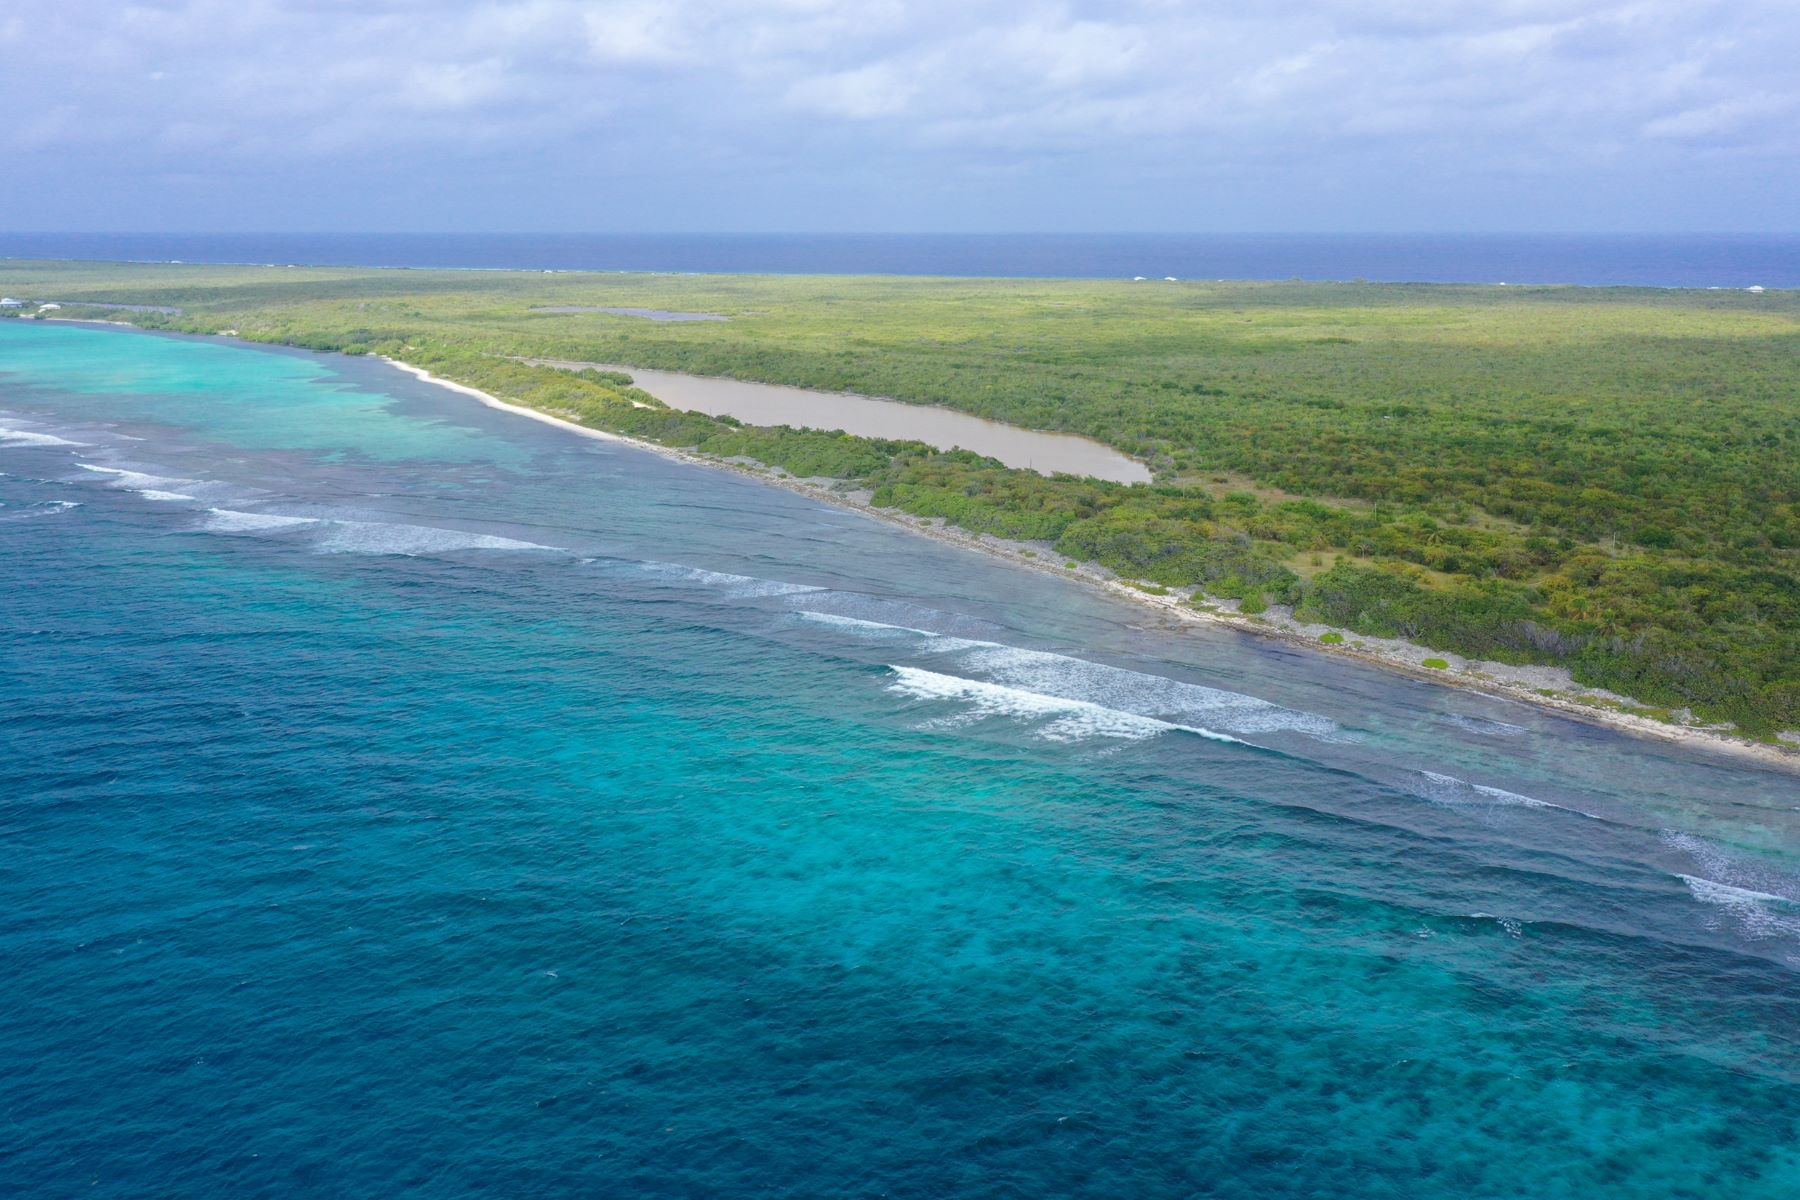 Land for Sale at Beach Land Lot Little Cayman Other Little Cayman, Little Cayman Cayman Islands